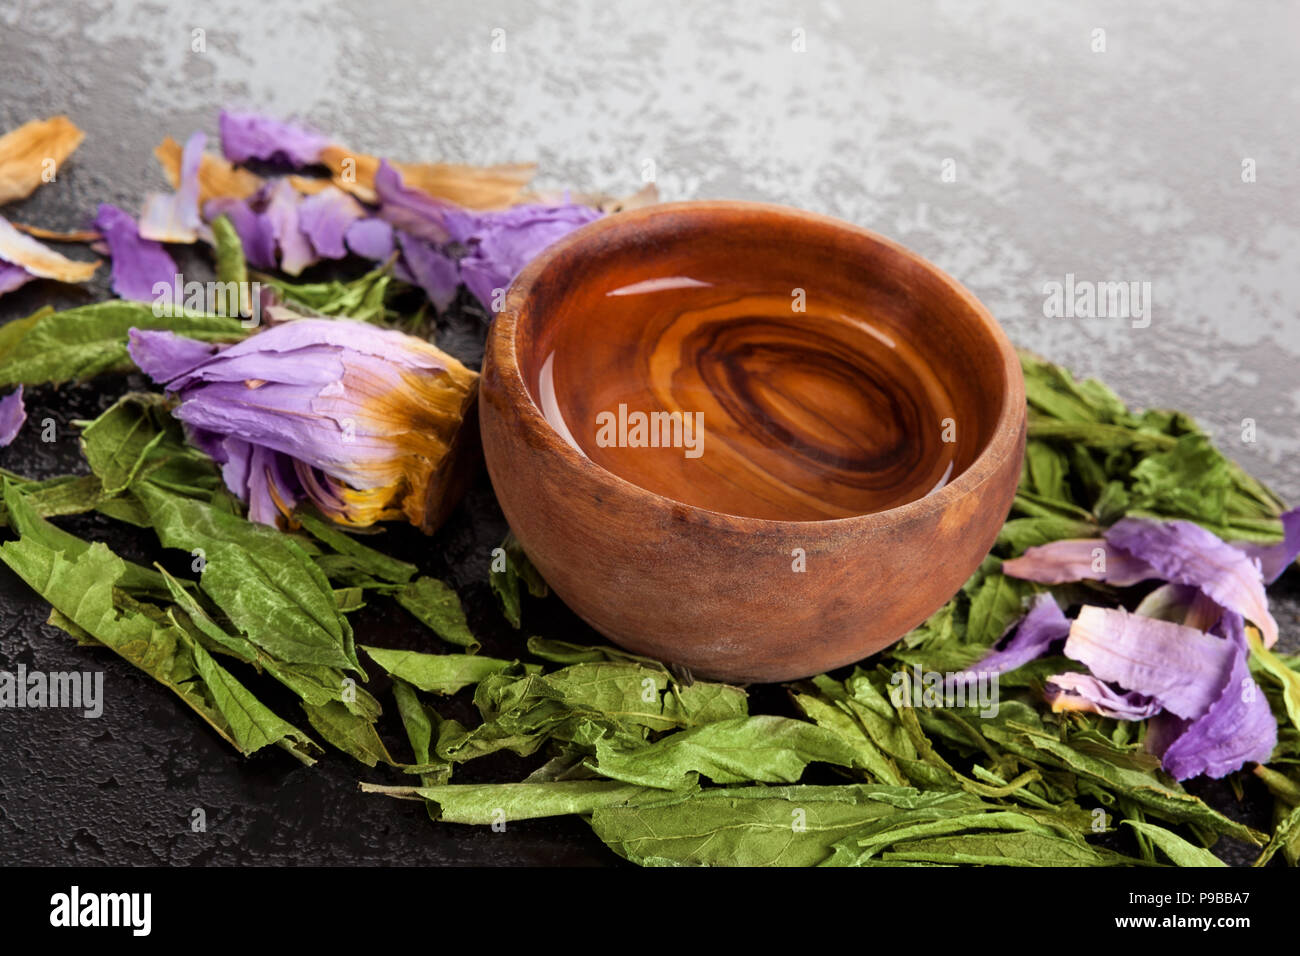 Dried Blue Lotus Flower With Dream Herbs And Oil Extract In Wooden